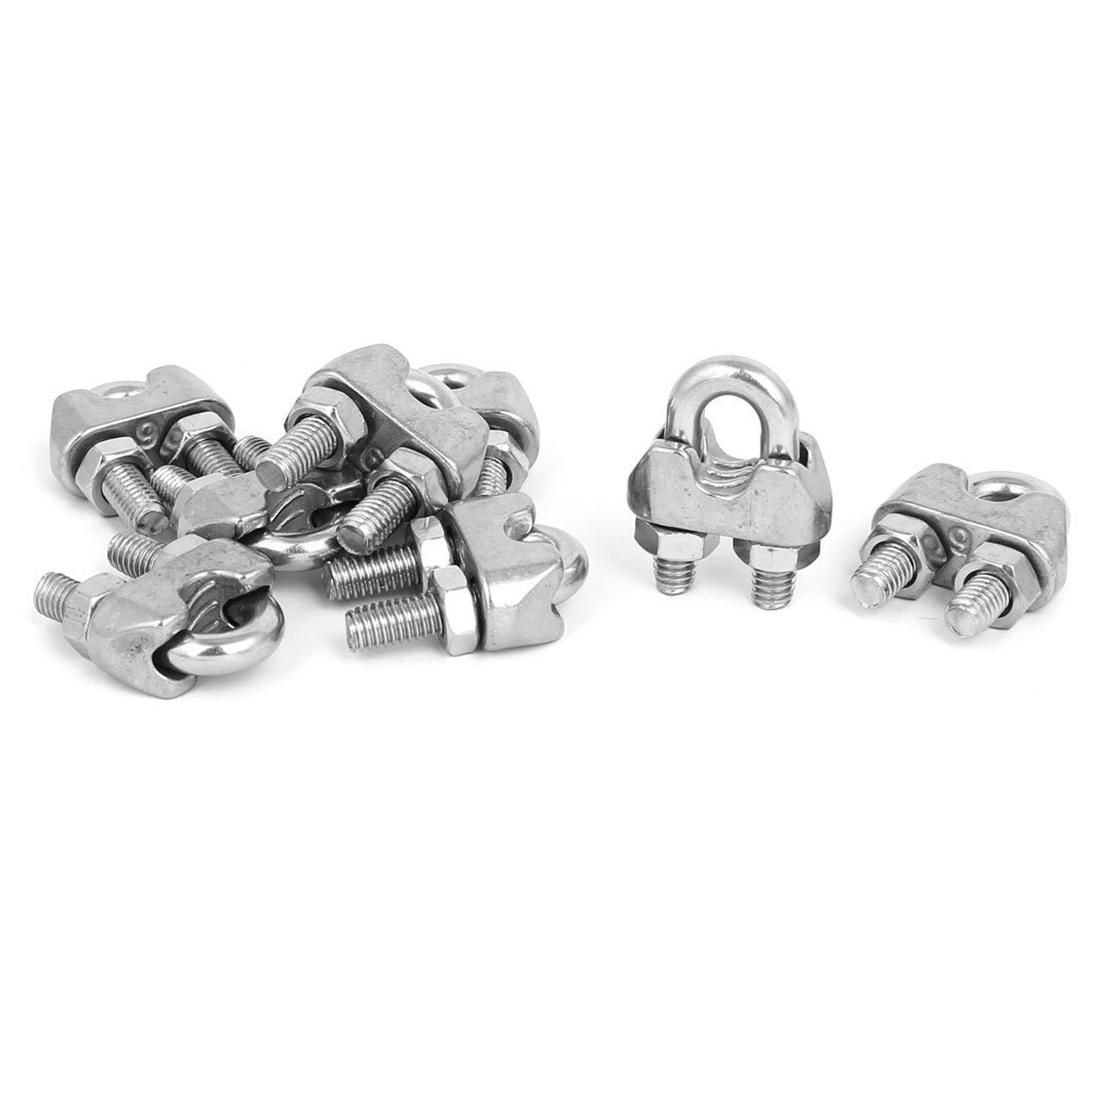 M6 1 4 Inch 304 Stainless Steel U Shape Bolt Saddle Clamps Cable Wire Rope Clips 8 Pcs With Images Cable Wire Saddle Clamp Bolt